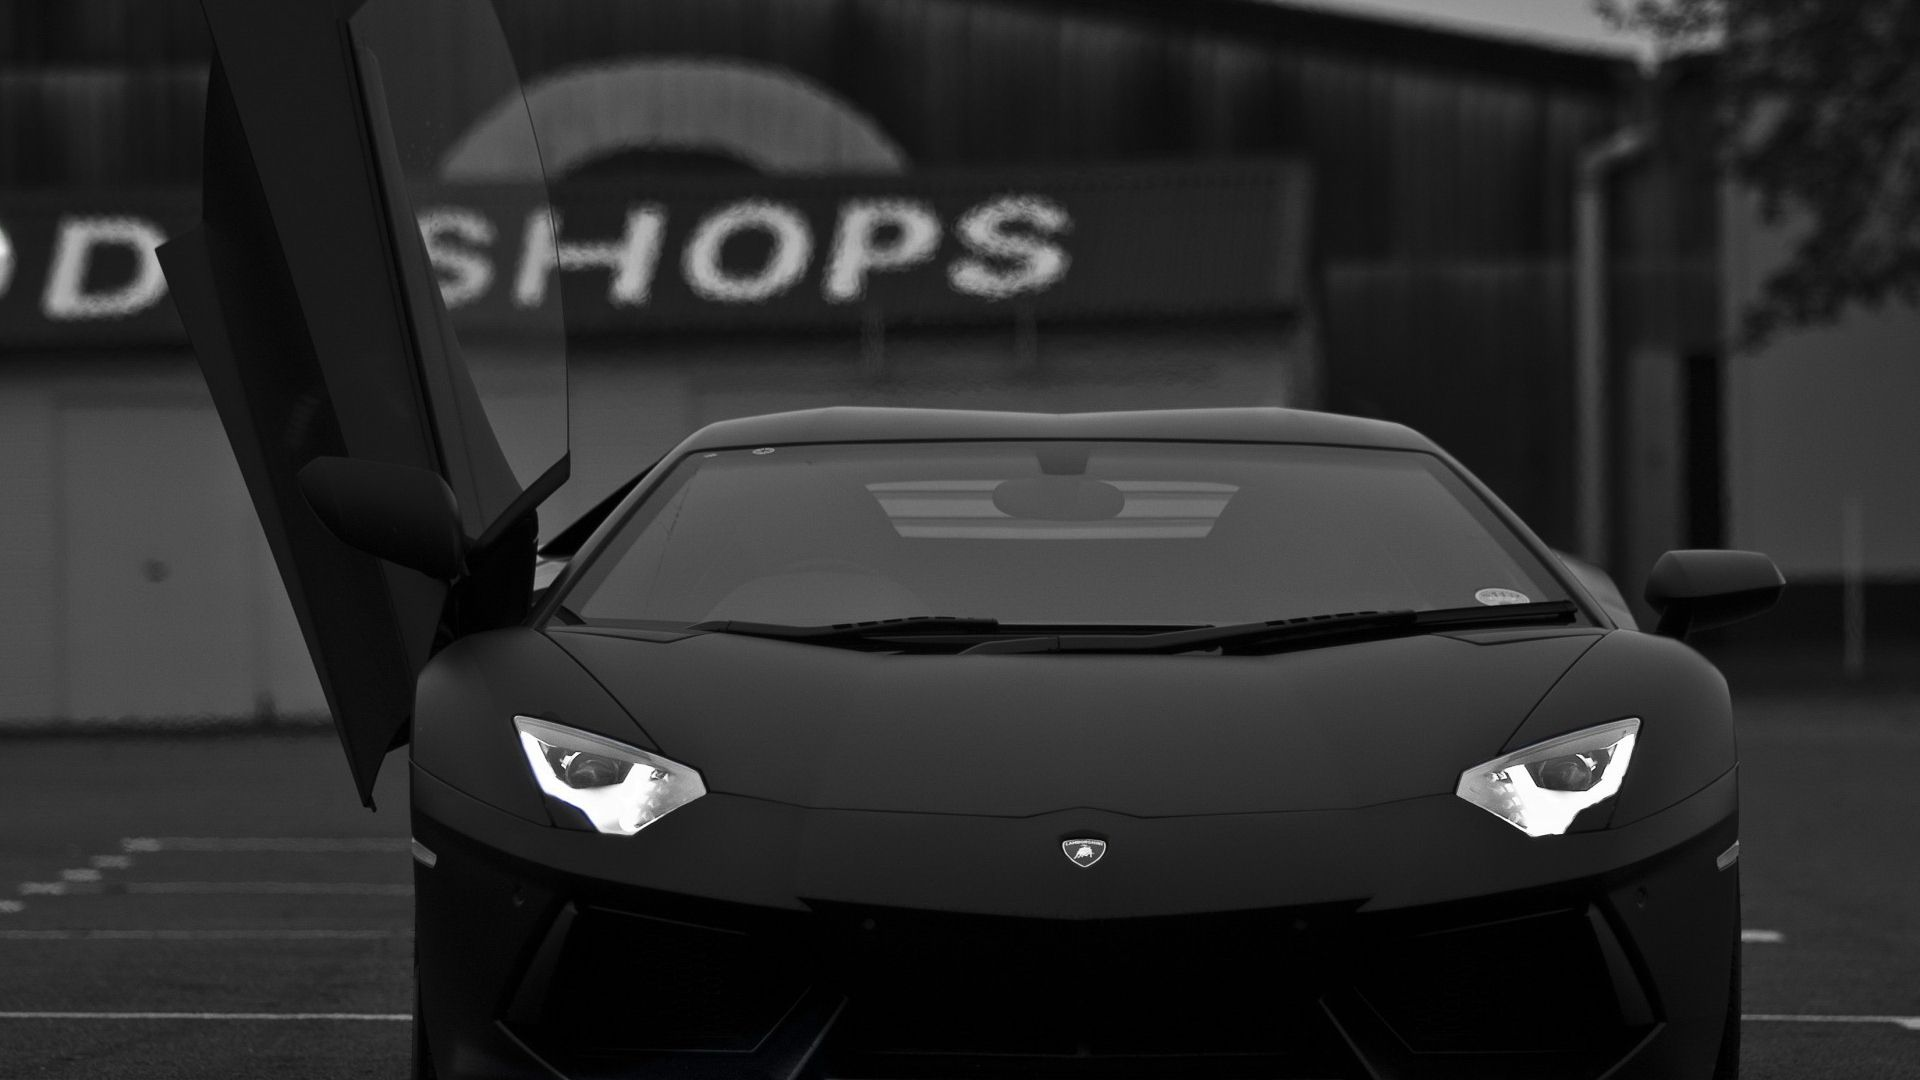 Lamborghini Aventador 1366x768 Hd Wallpaper Black And White